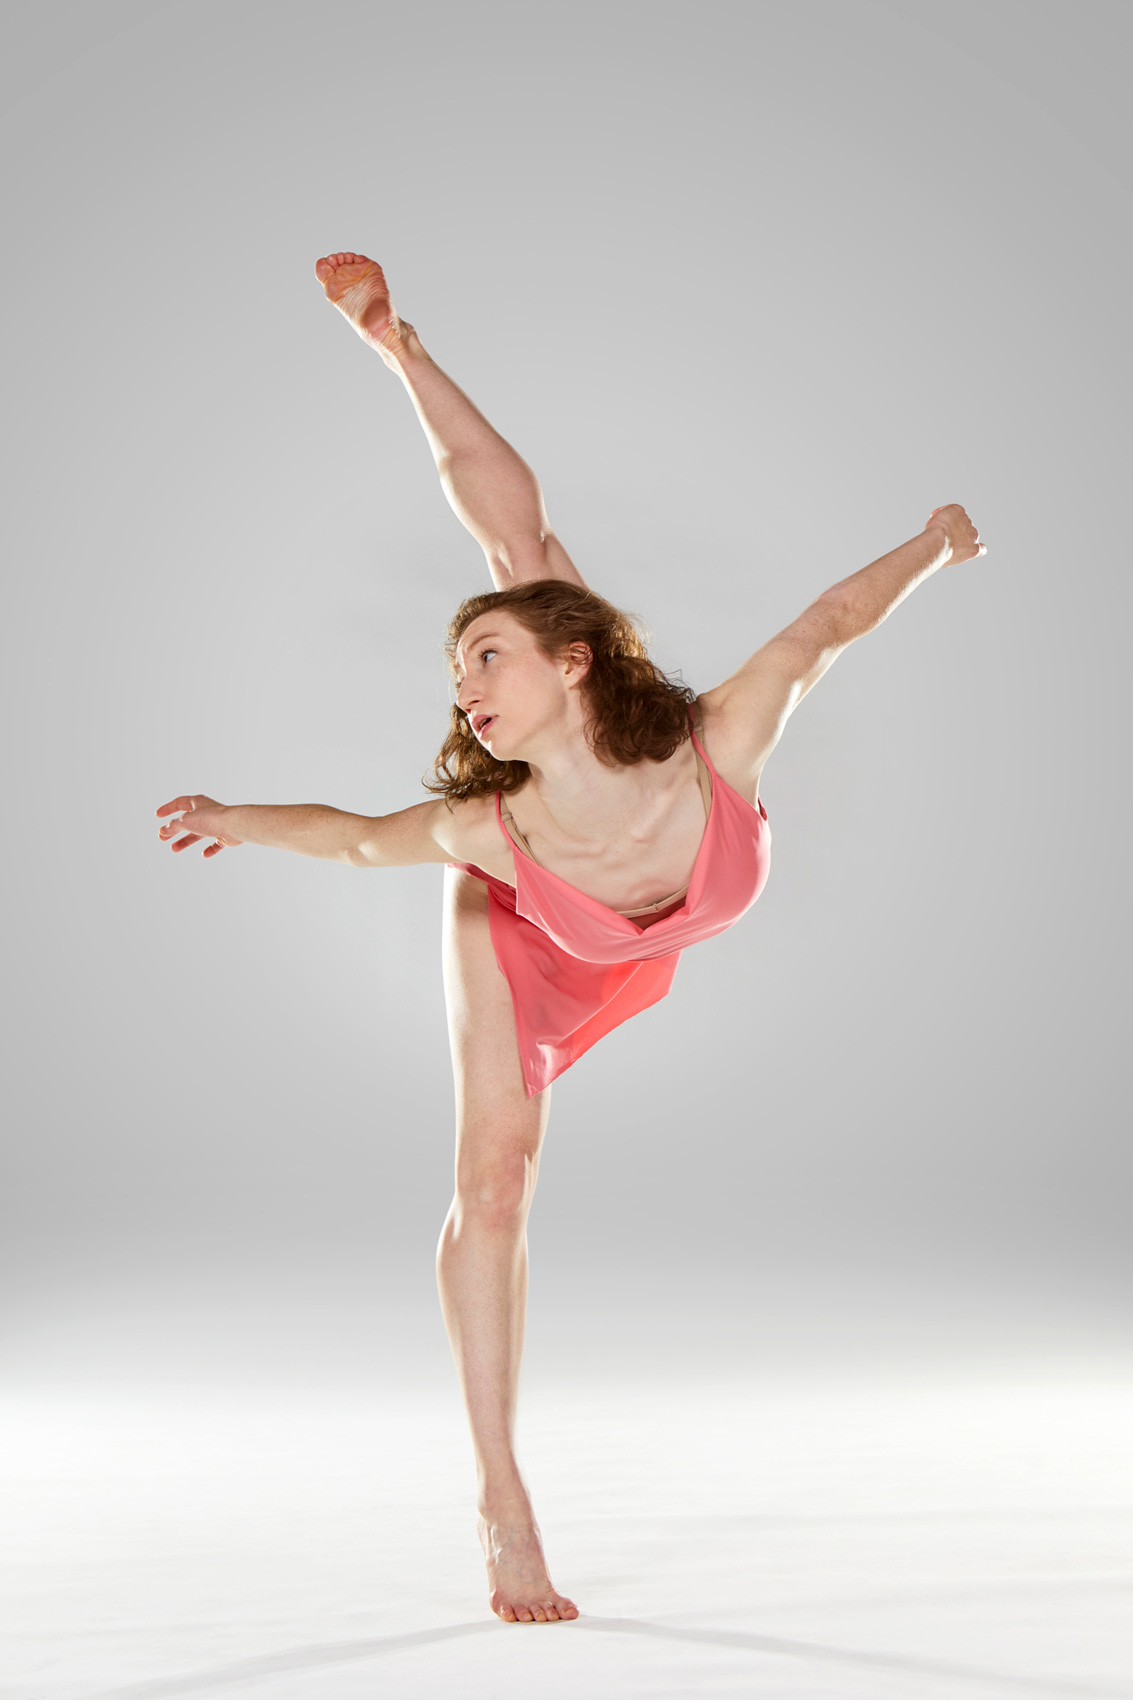 Megan-Maloy-dance10